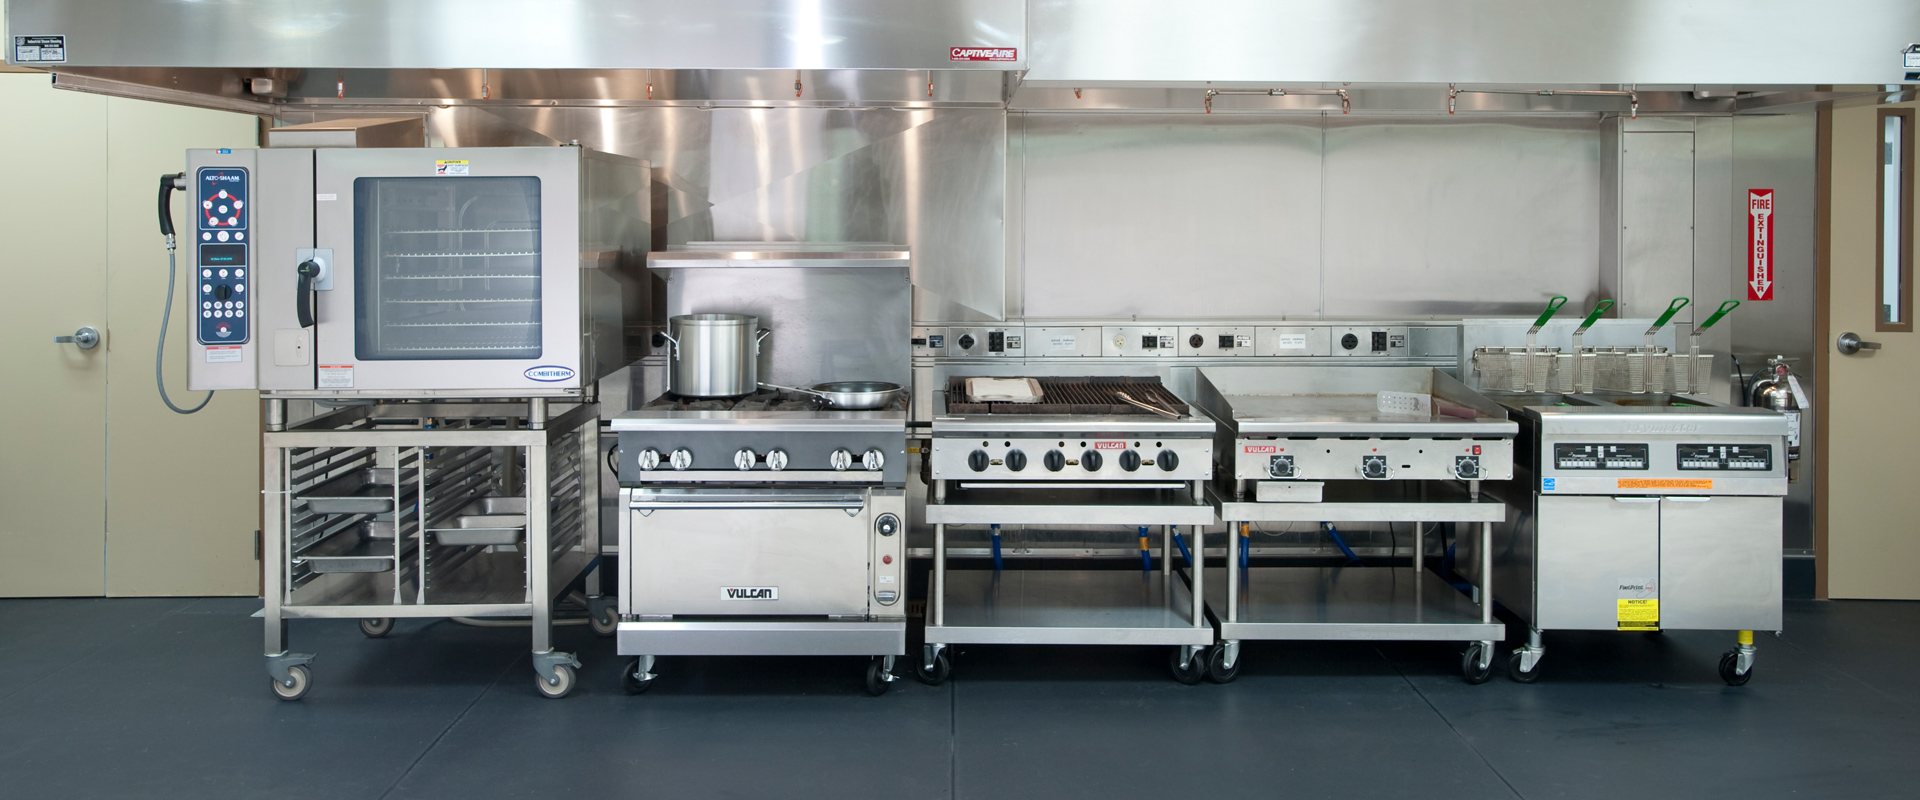 Commercial Catering Equipment – Some General Information